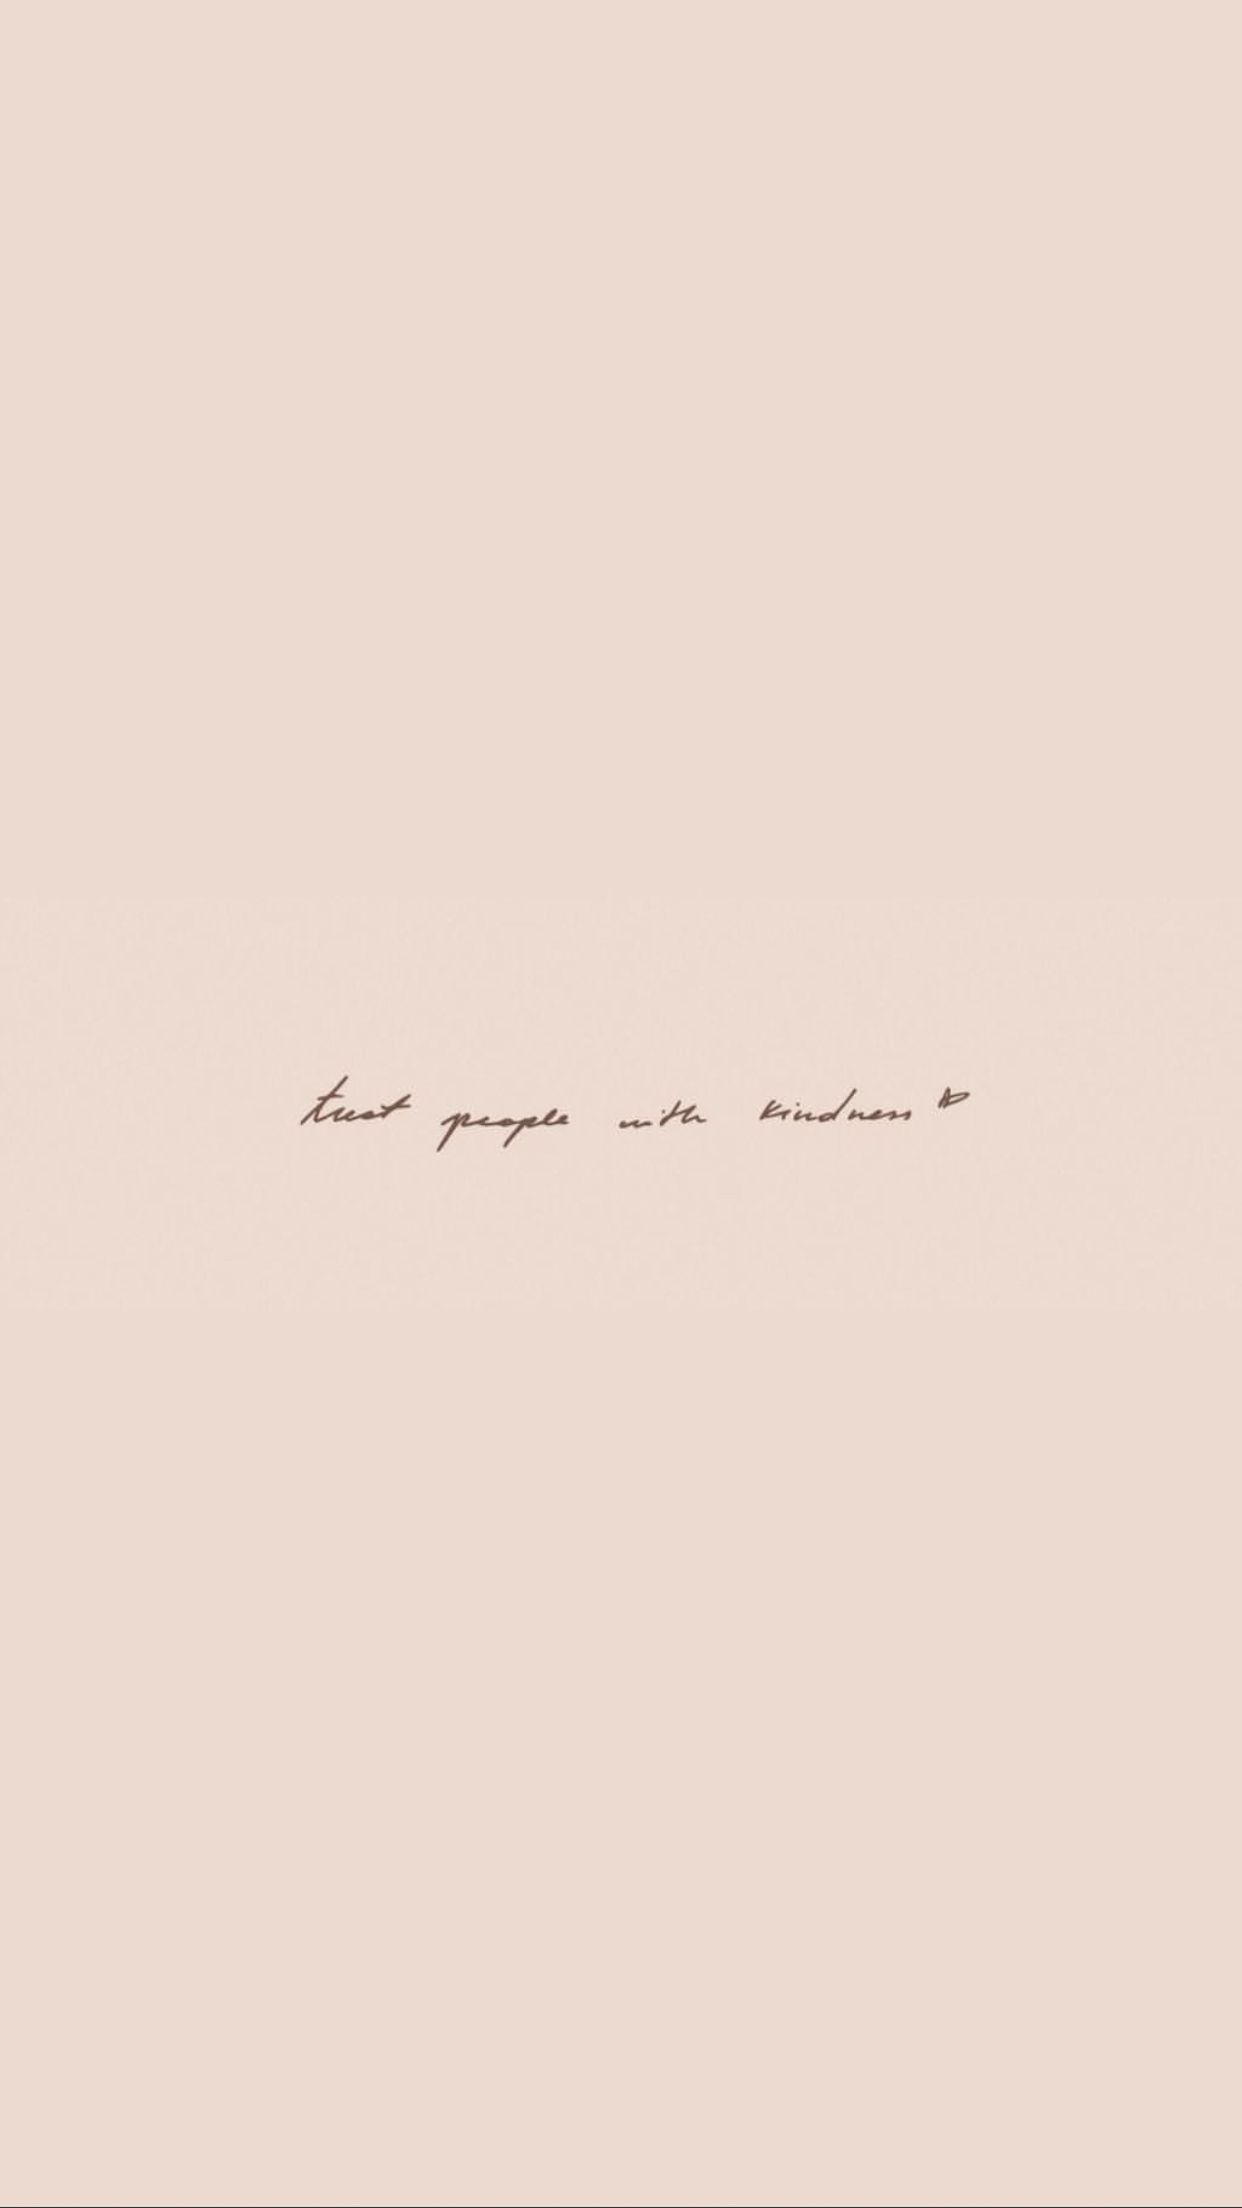 Tpwk Tattoo Tpwk Tattoo In 2020 Harry Styles Quotes Style Lyrics Harry Styles Tattoos